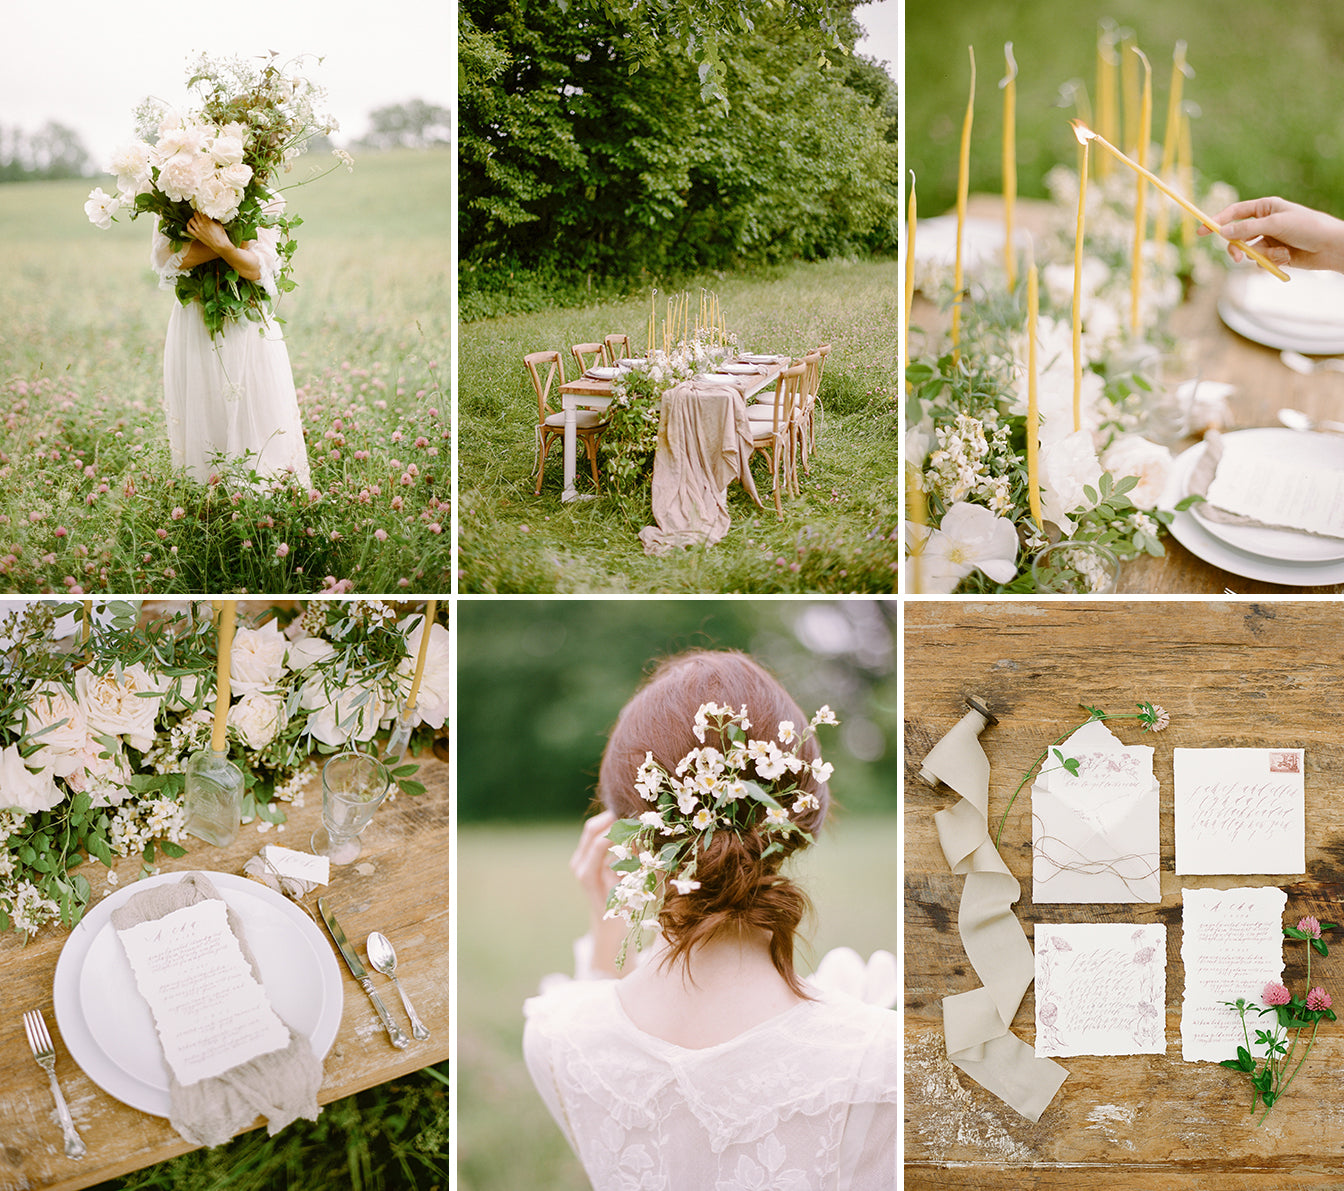 A stunning photo shoot of a perfect wedding day spread, featuring table, chairs, glassware & flatware by Nectar. Coordinated, styled and dreamt up by Silk & Willow, shot by Rebecca Yale.